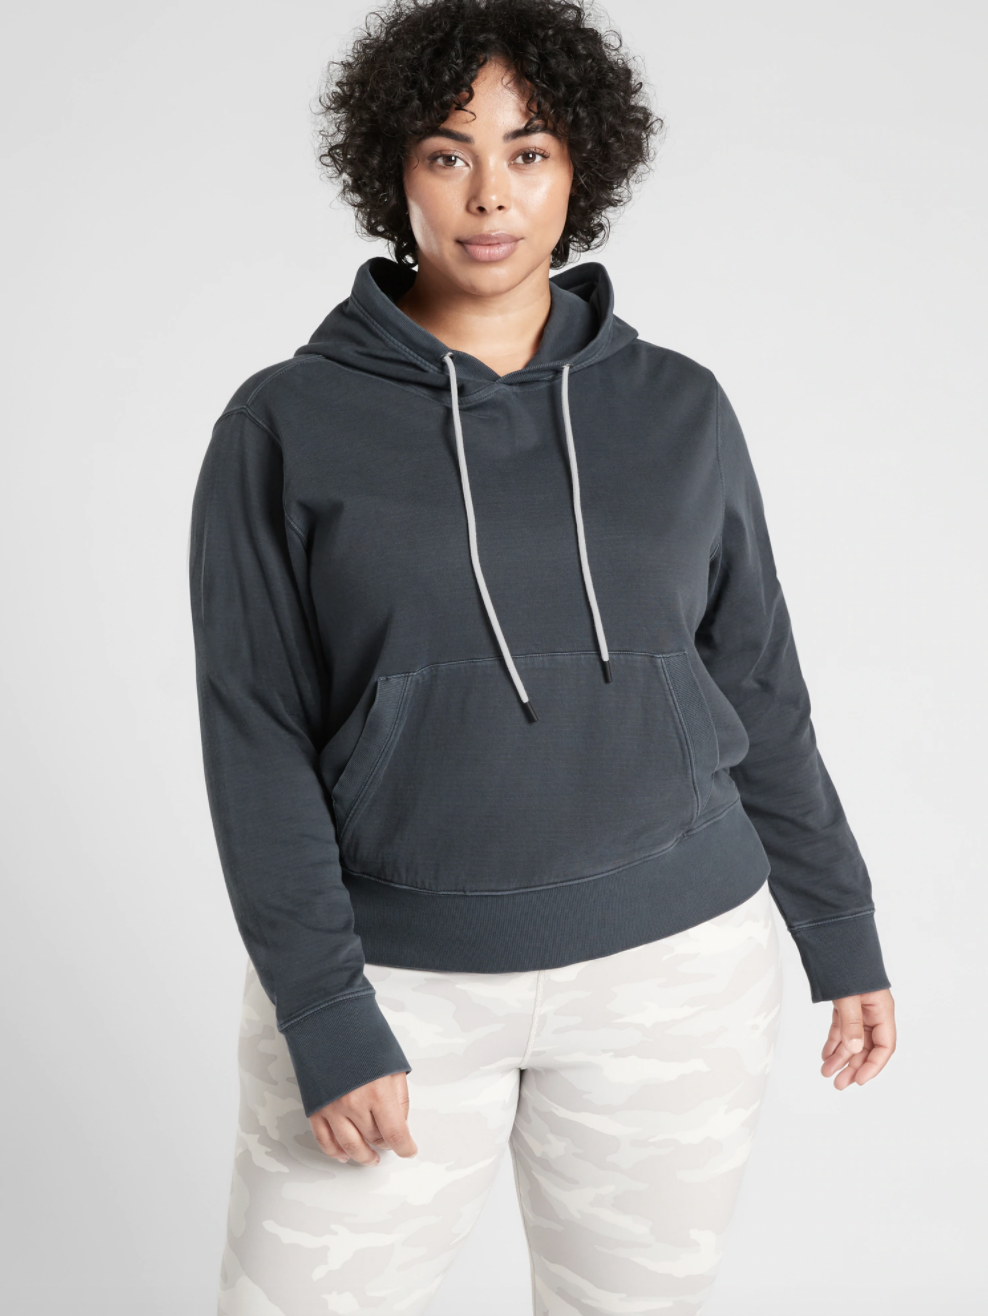 A model wearing a dark gray sweatshirt with a front pocket and drawstring hood